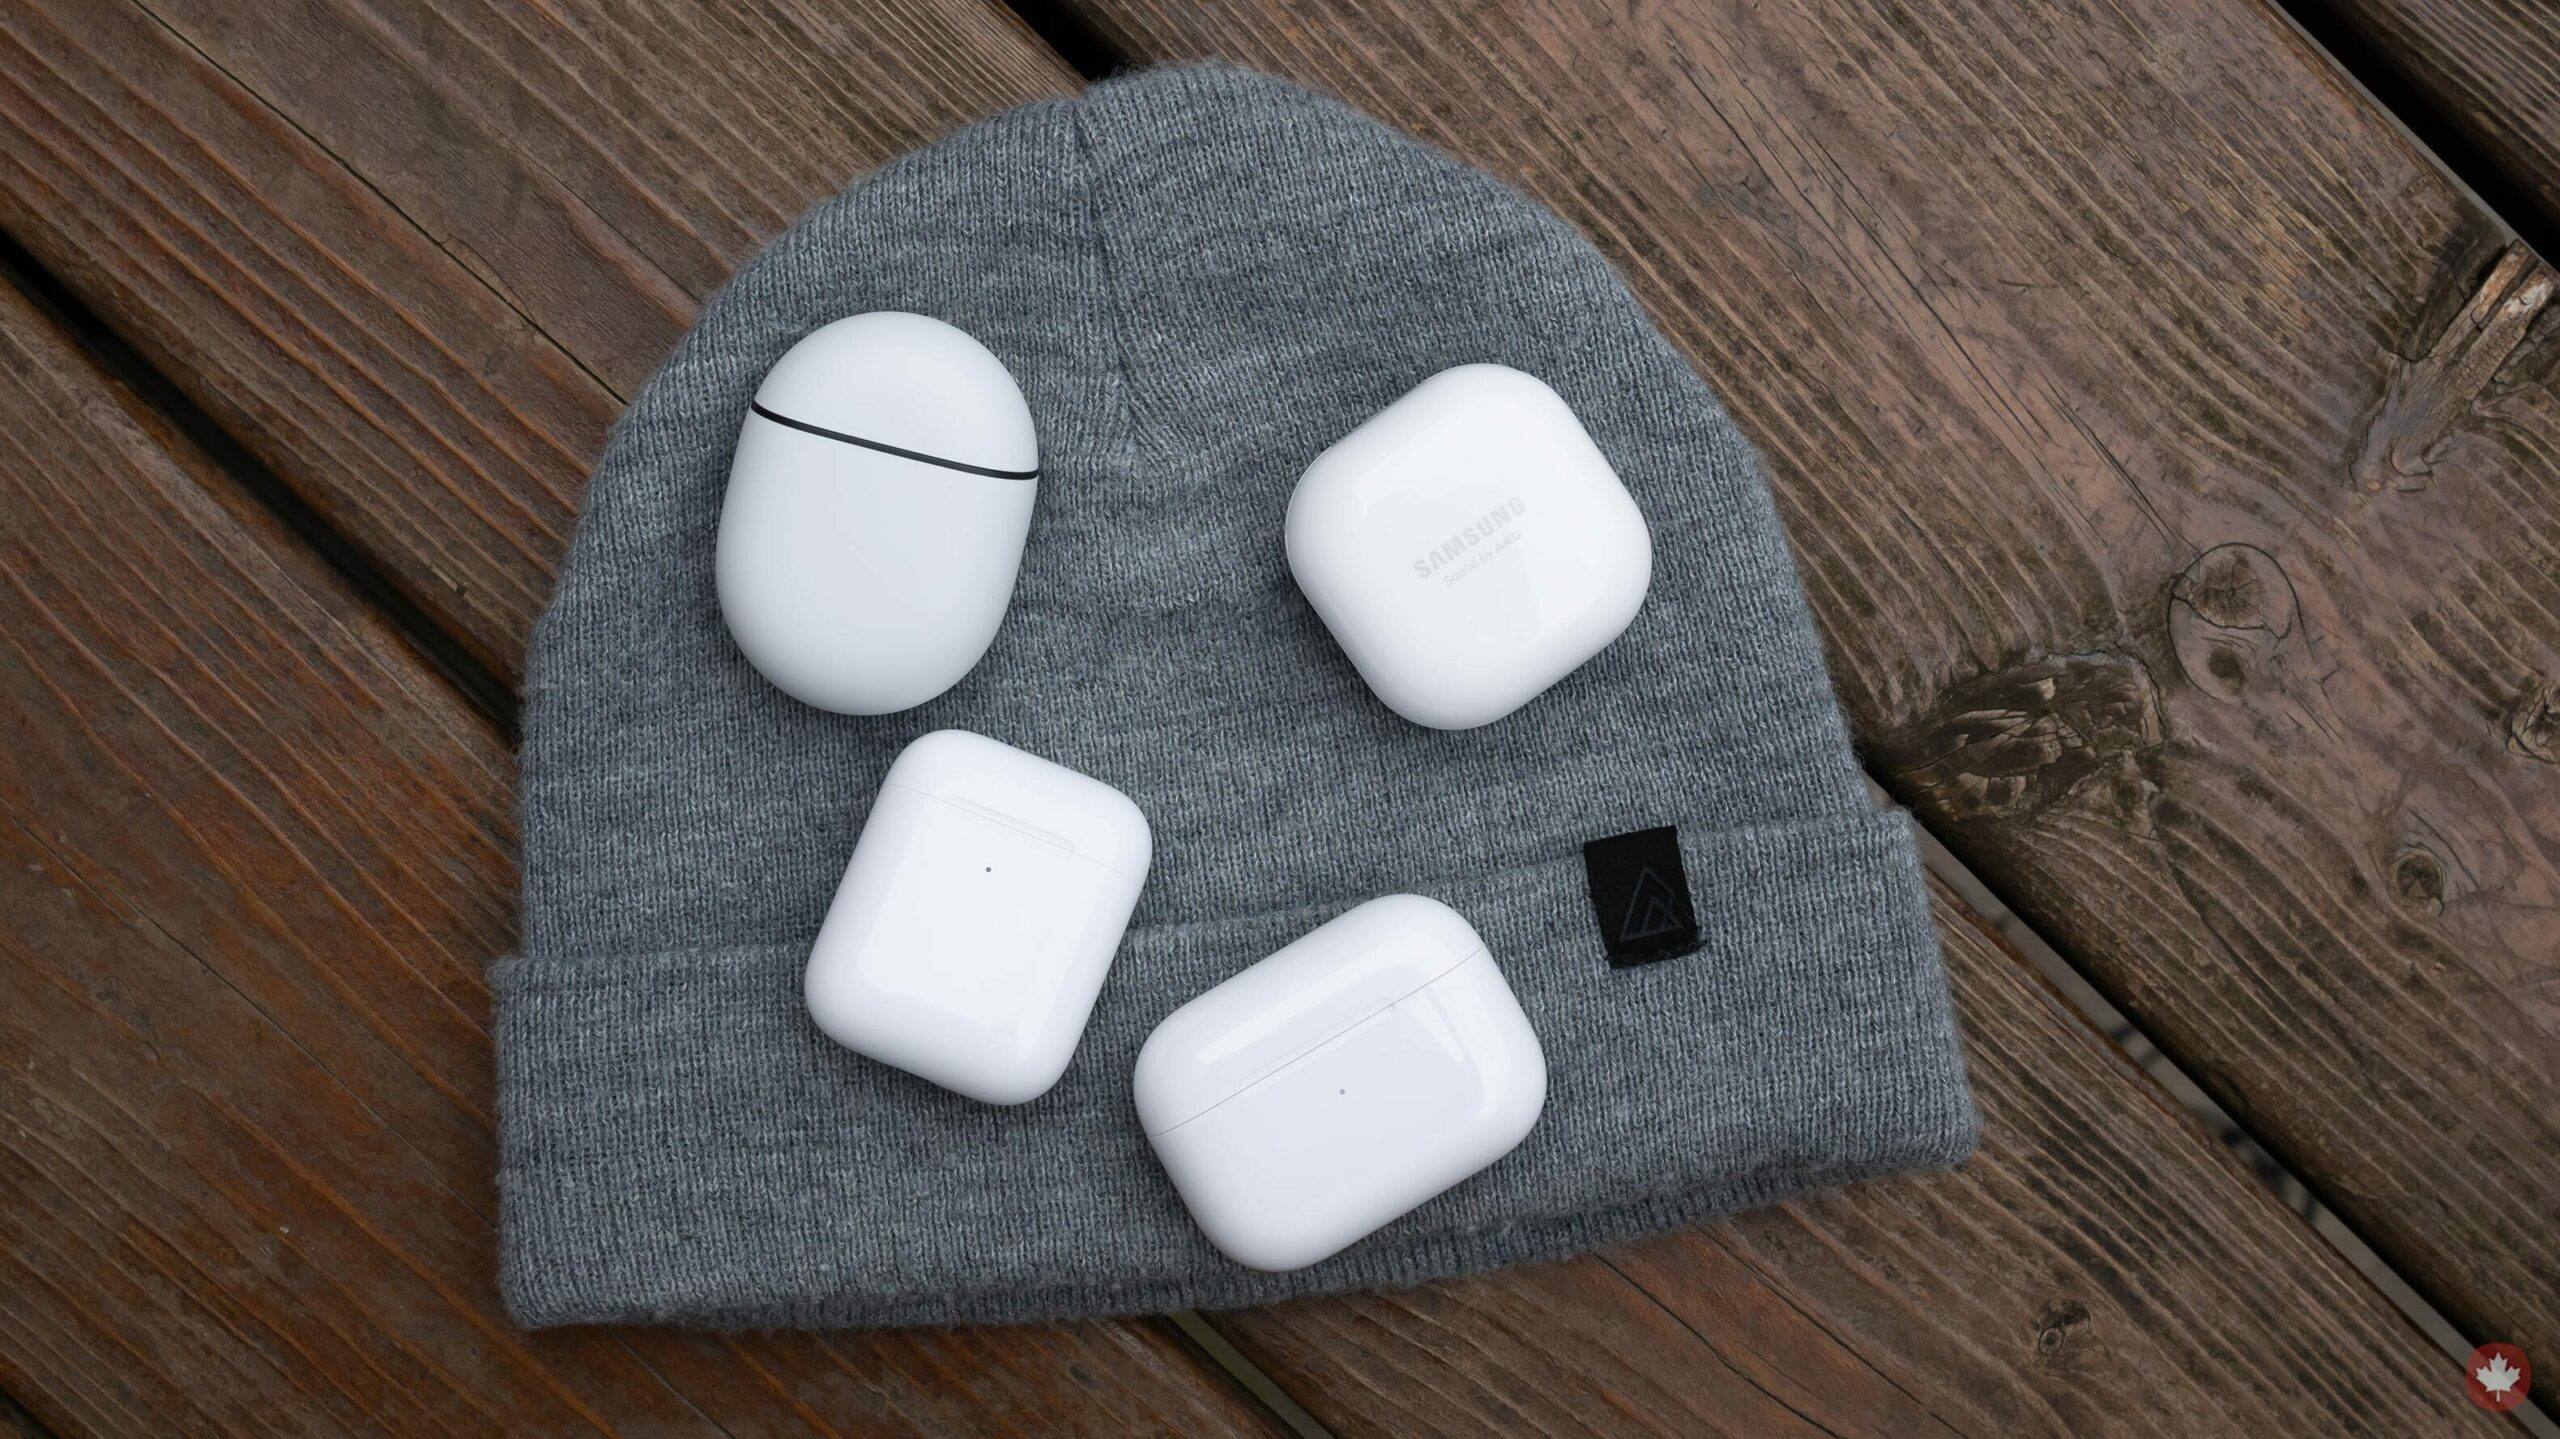 Earbuds on a touque